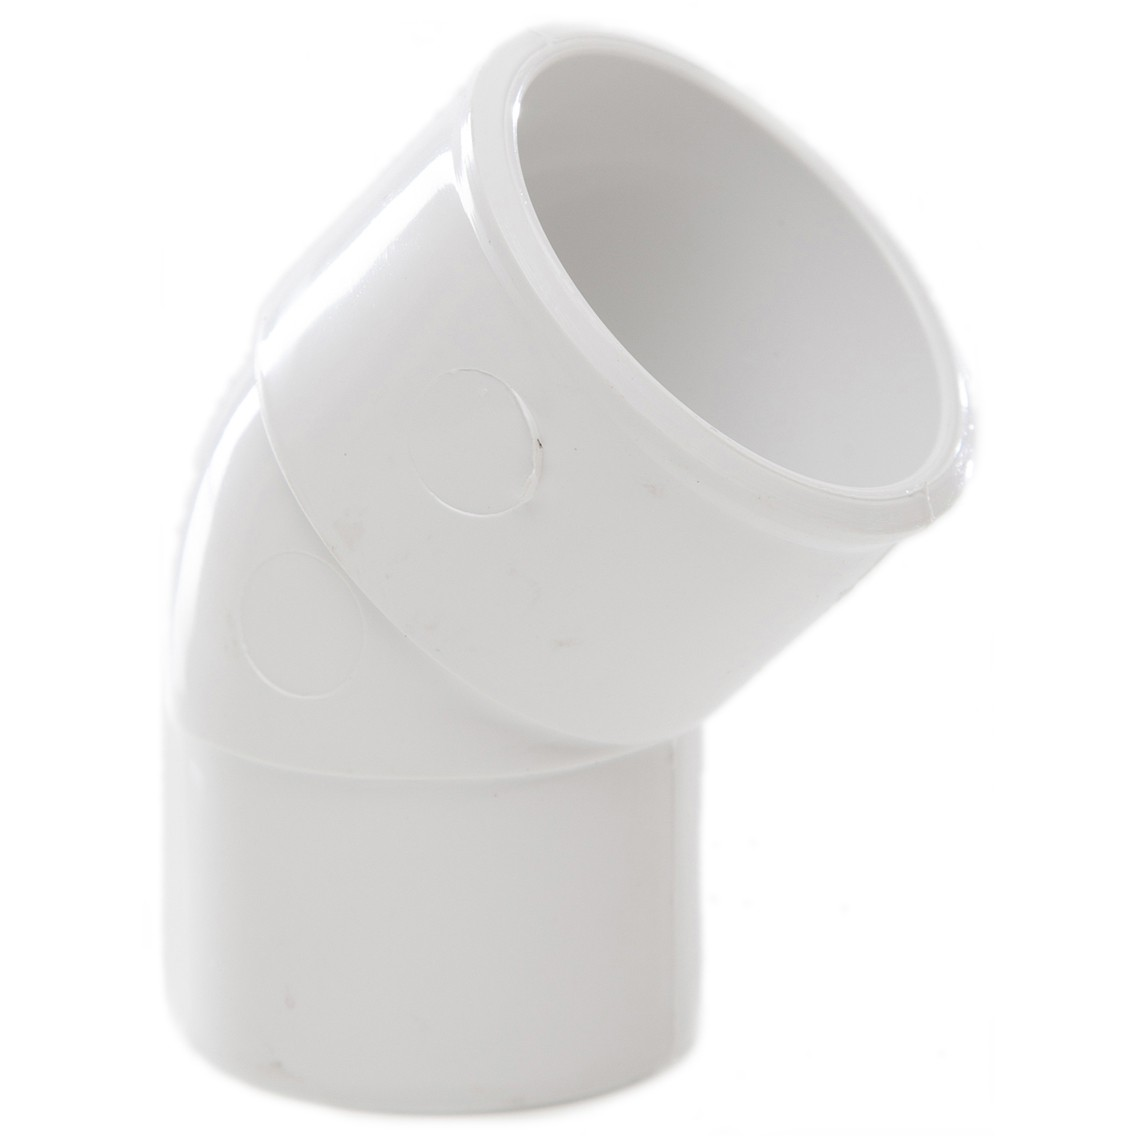 Polypipe 32mm Solvent Weld Waste 45 Degree Spigot Bend - White